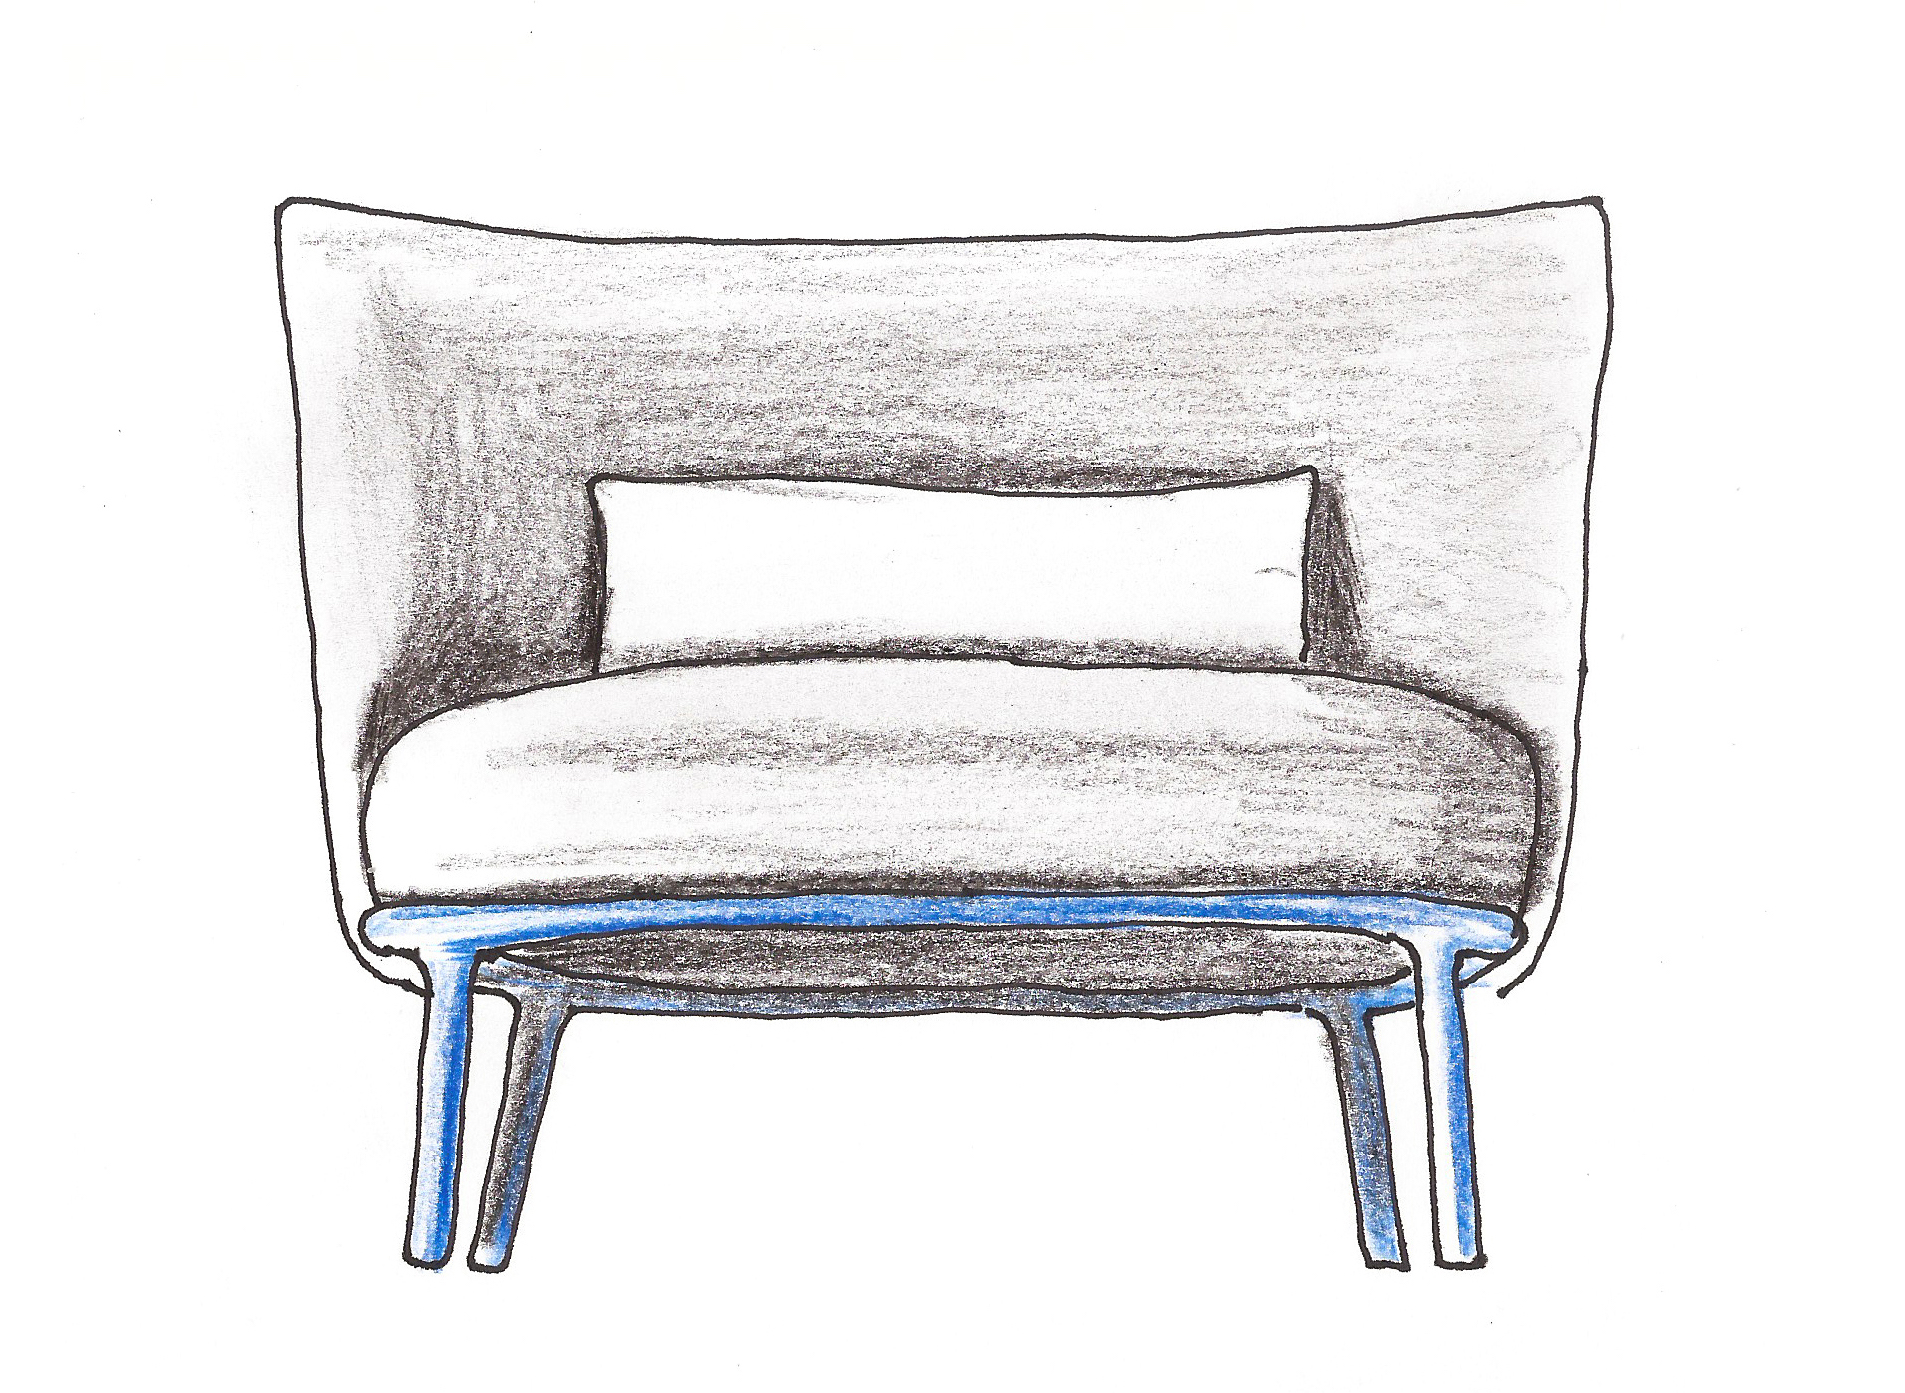 Shift easychair sketch by Debiasi Sandri for Offecct